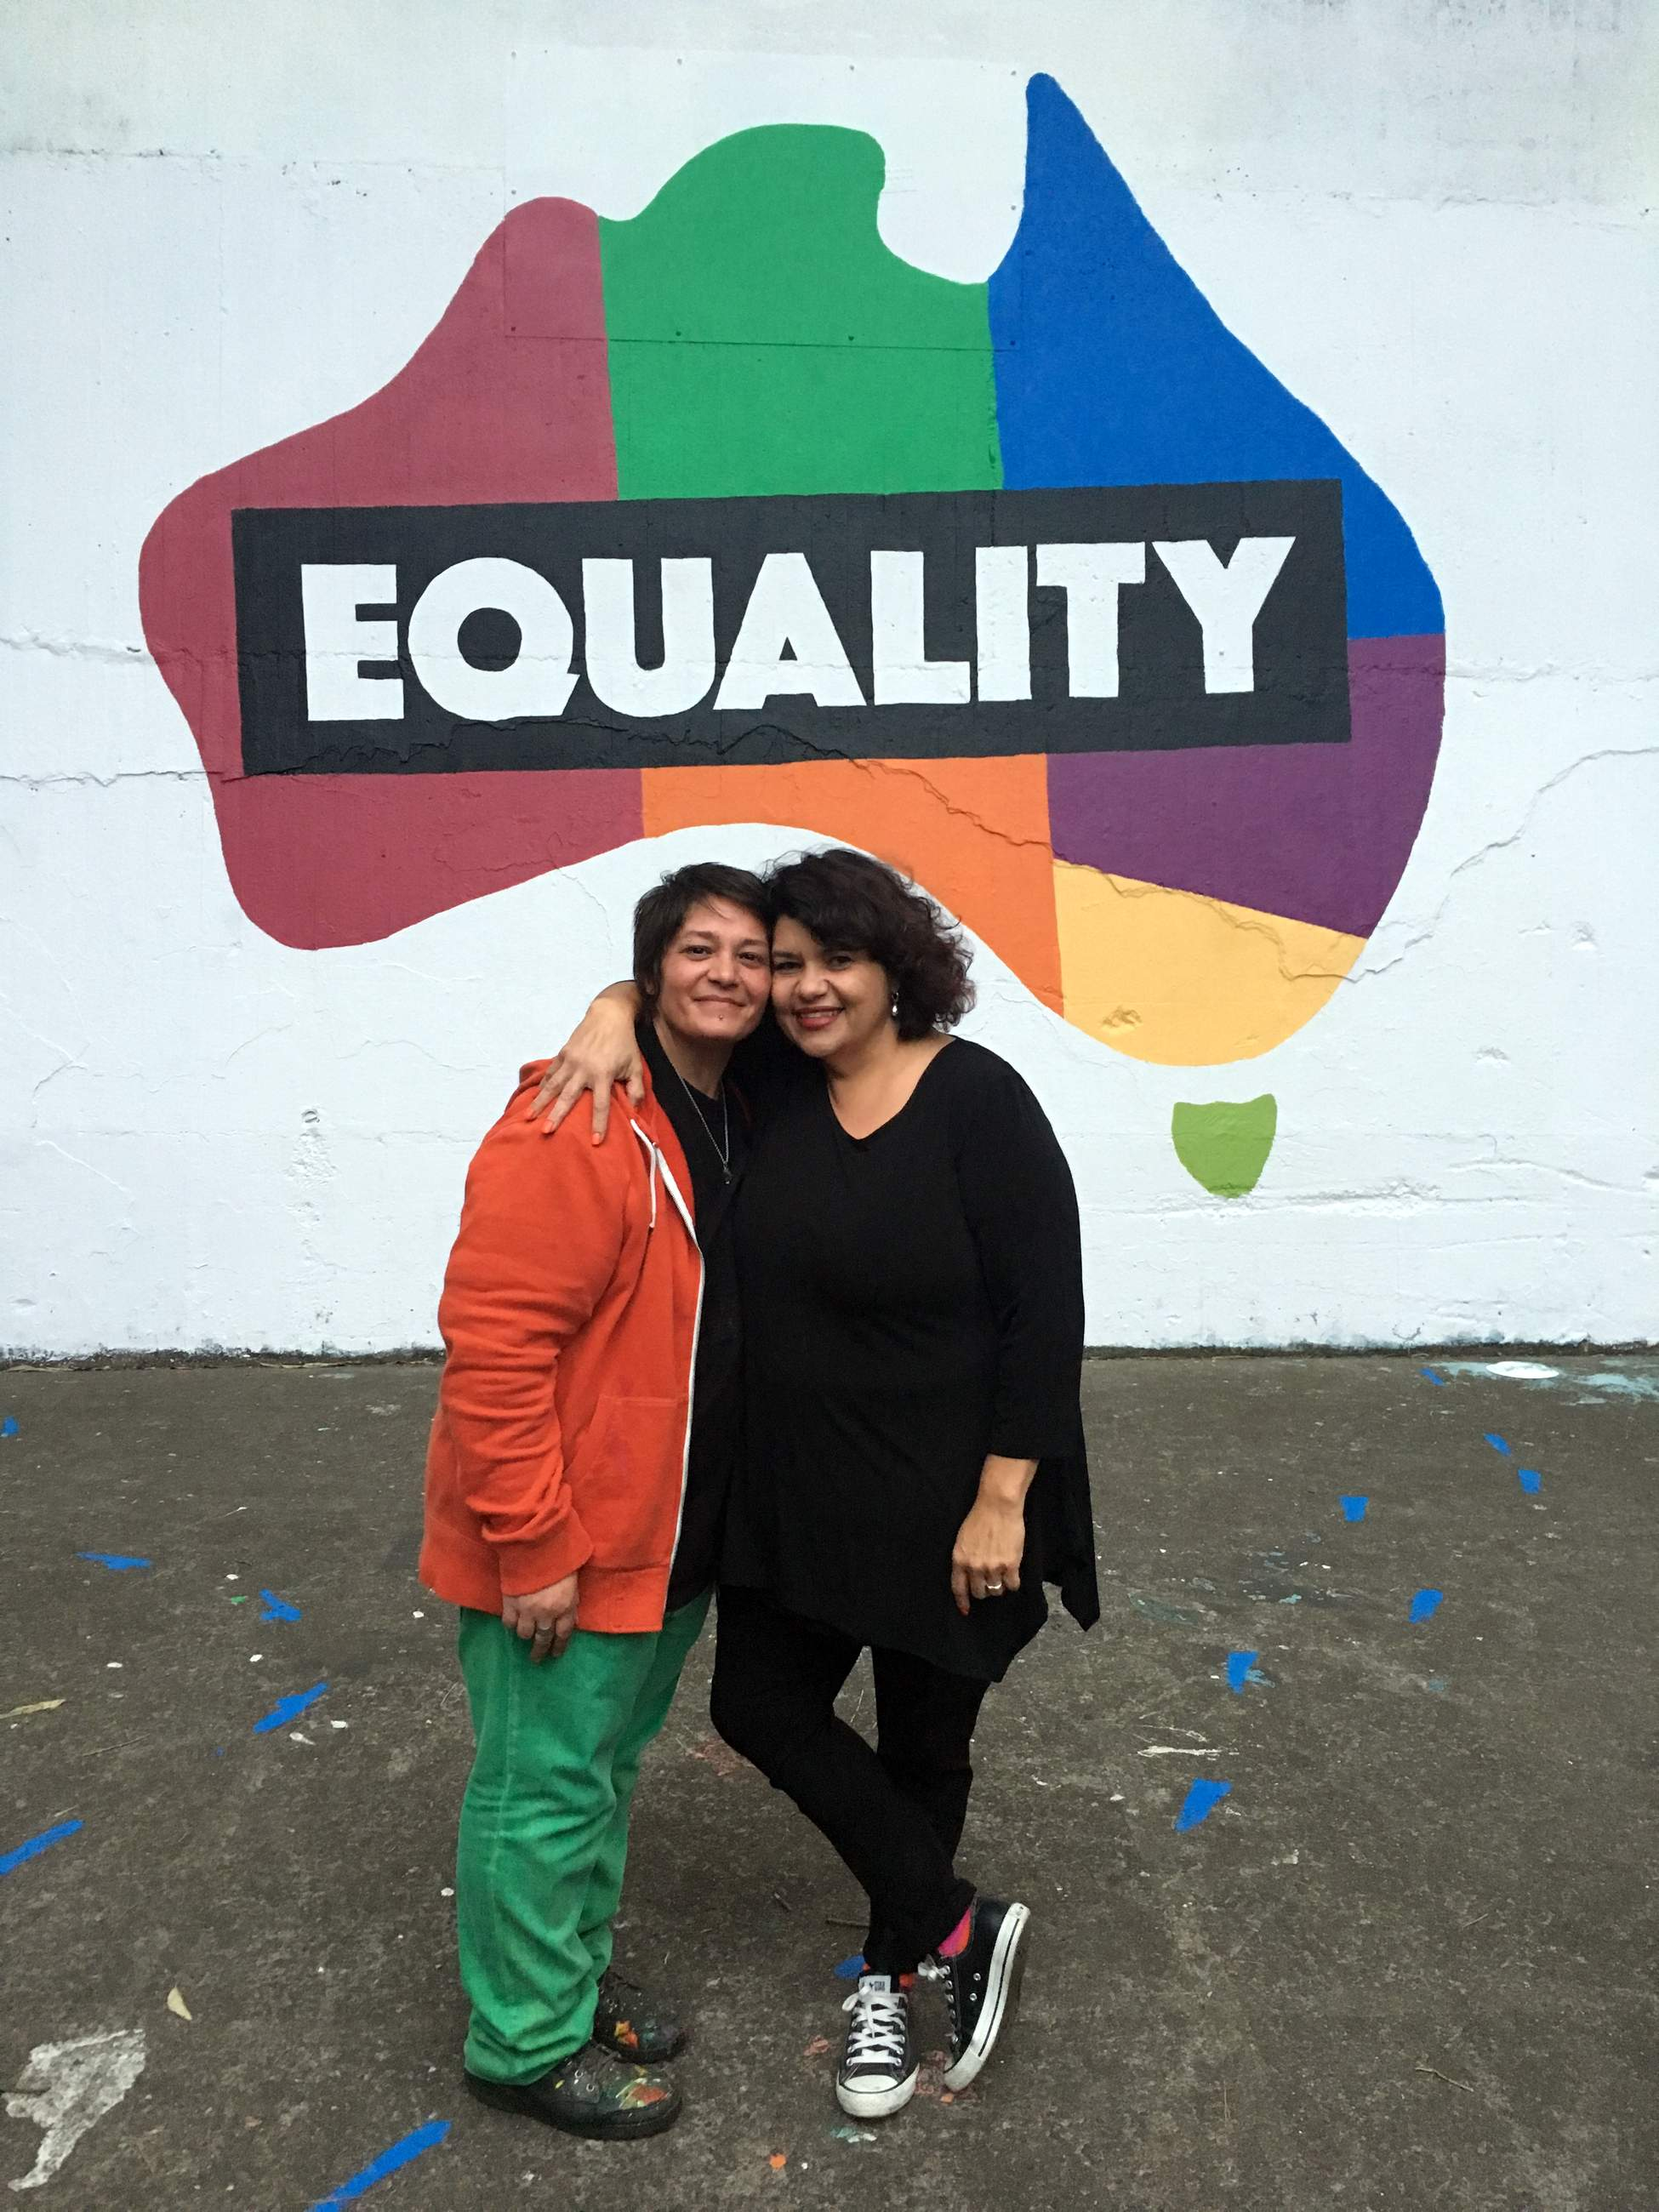 De and Kirstie are proud to be part of The Equality Campaign.